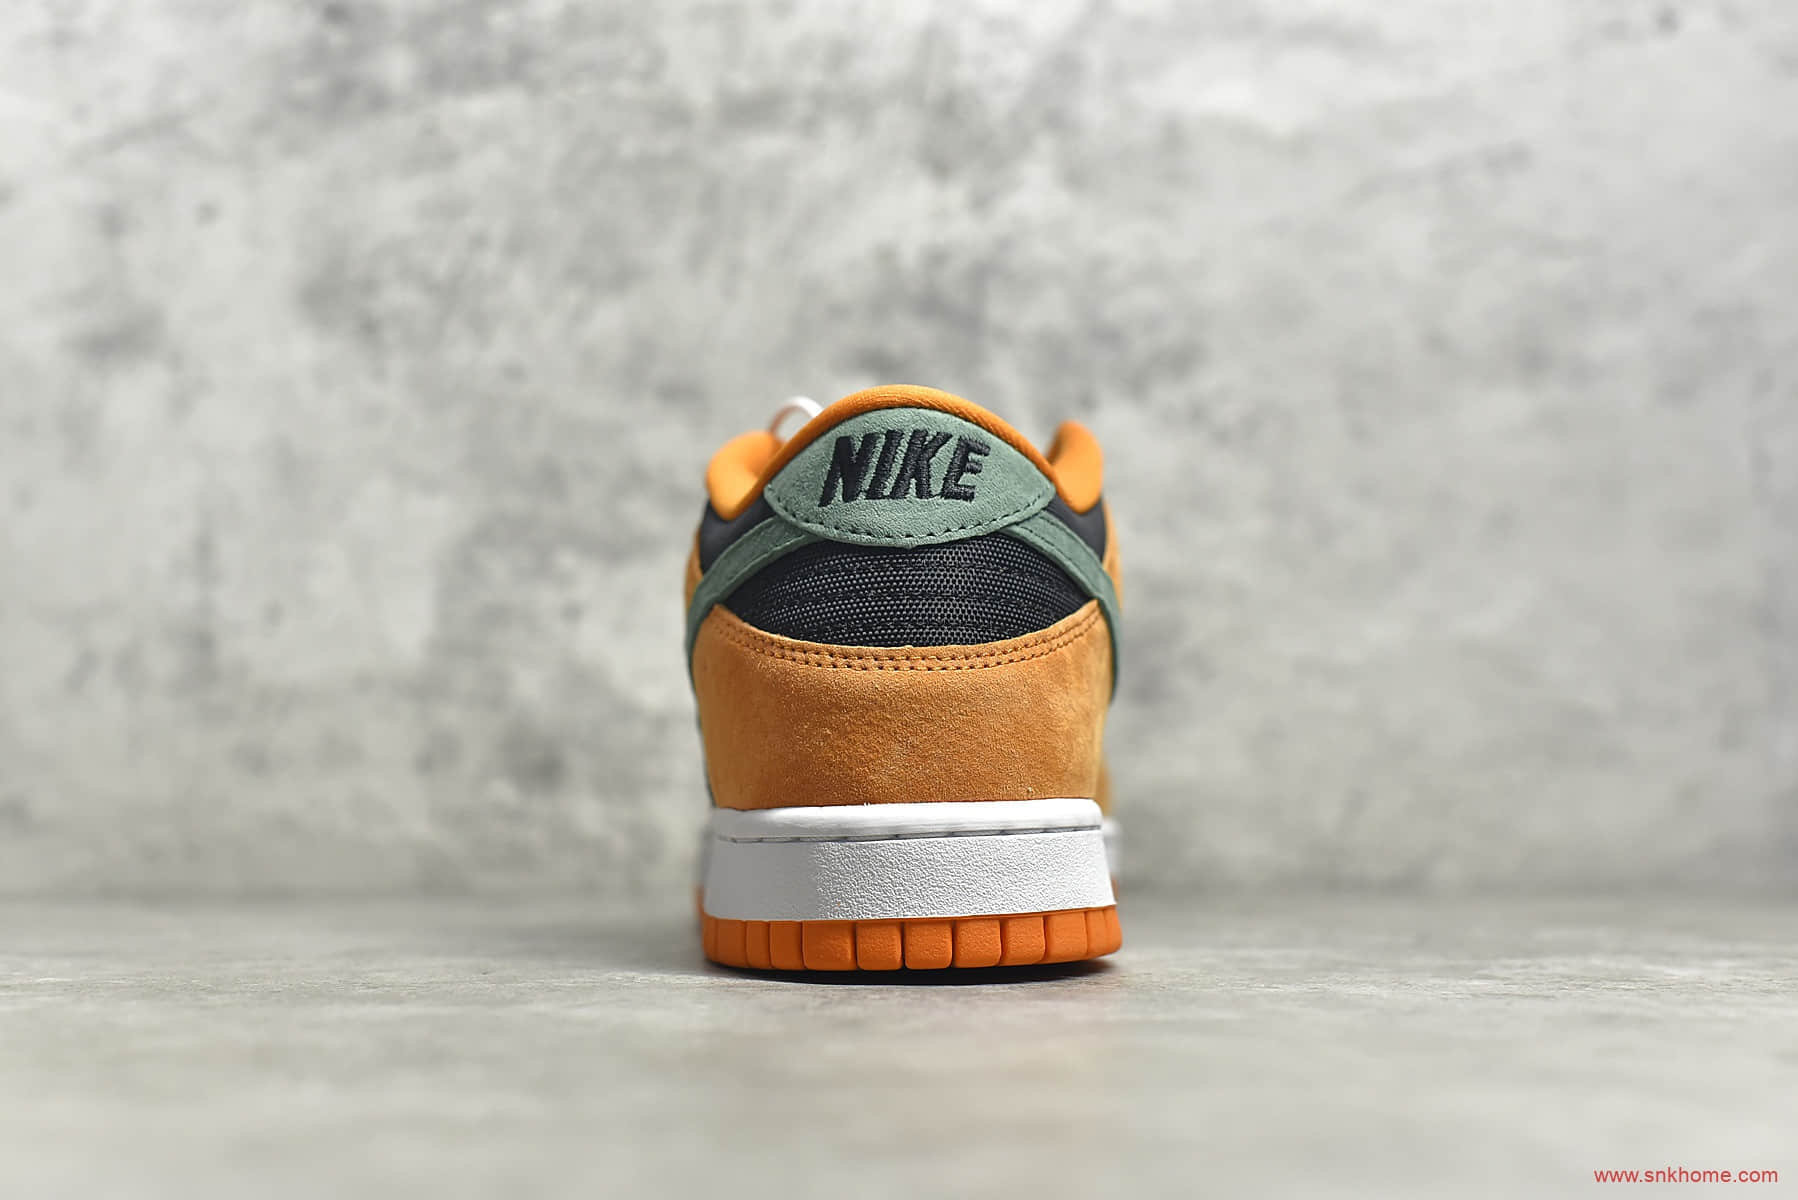 耐克Dunk SB丑小鸭 NIKE Dunk SB Low SO